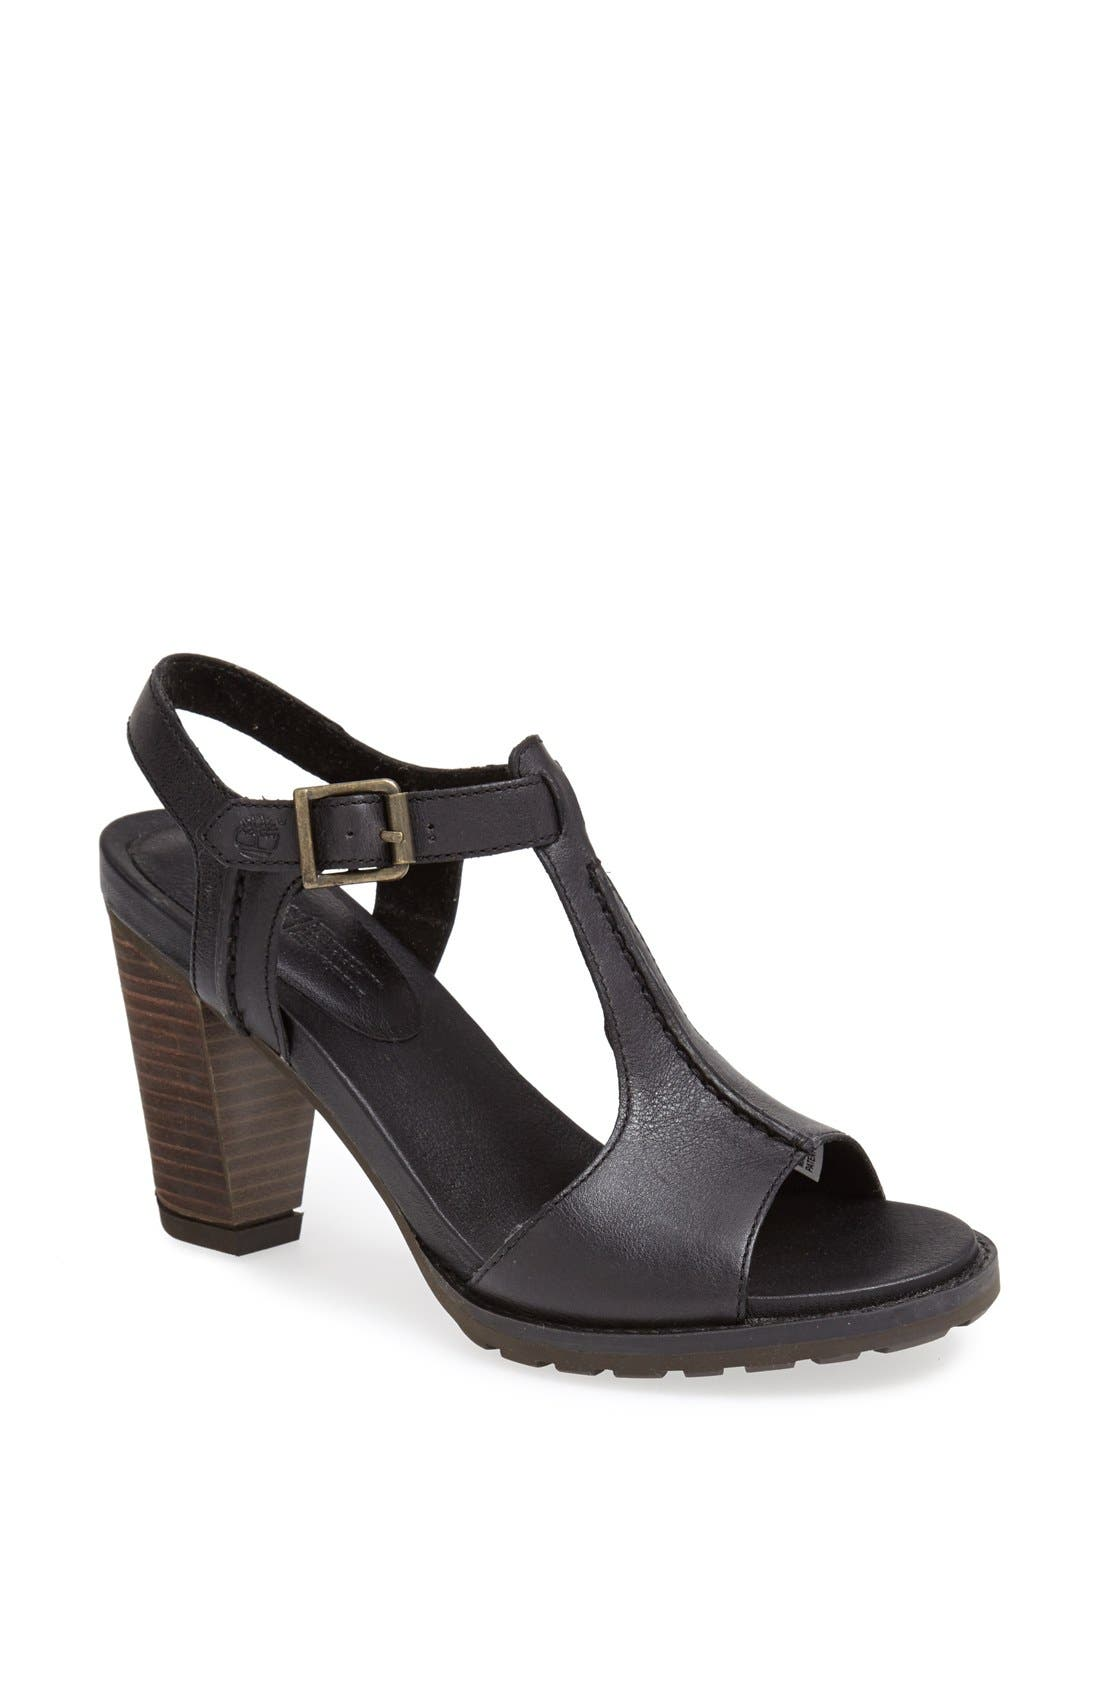 Earthkeepers<sup>®</sup> 'Stratham Heights' Sandal,                             Main thumbnail 1, color,                             001